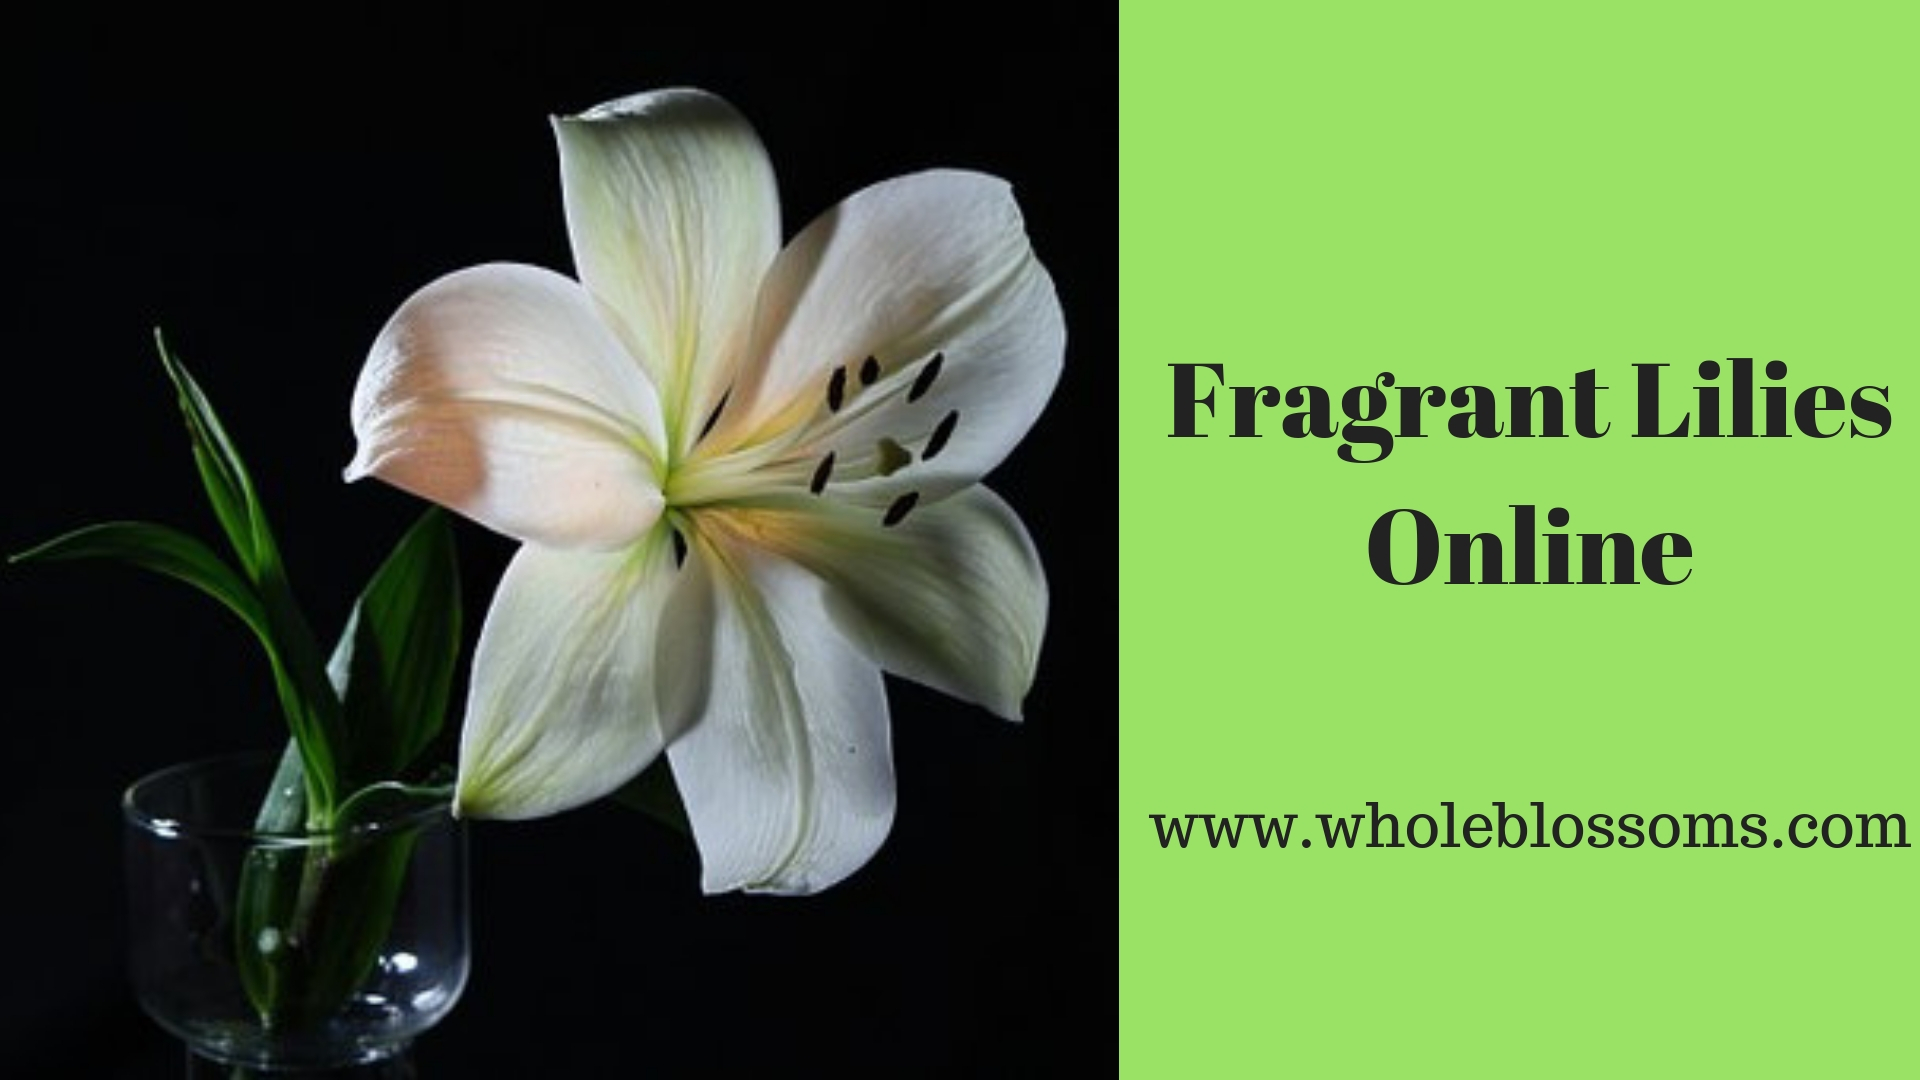 Purchase Fragrant Lilies at Most Resonable Prices